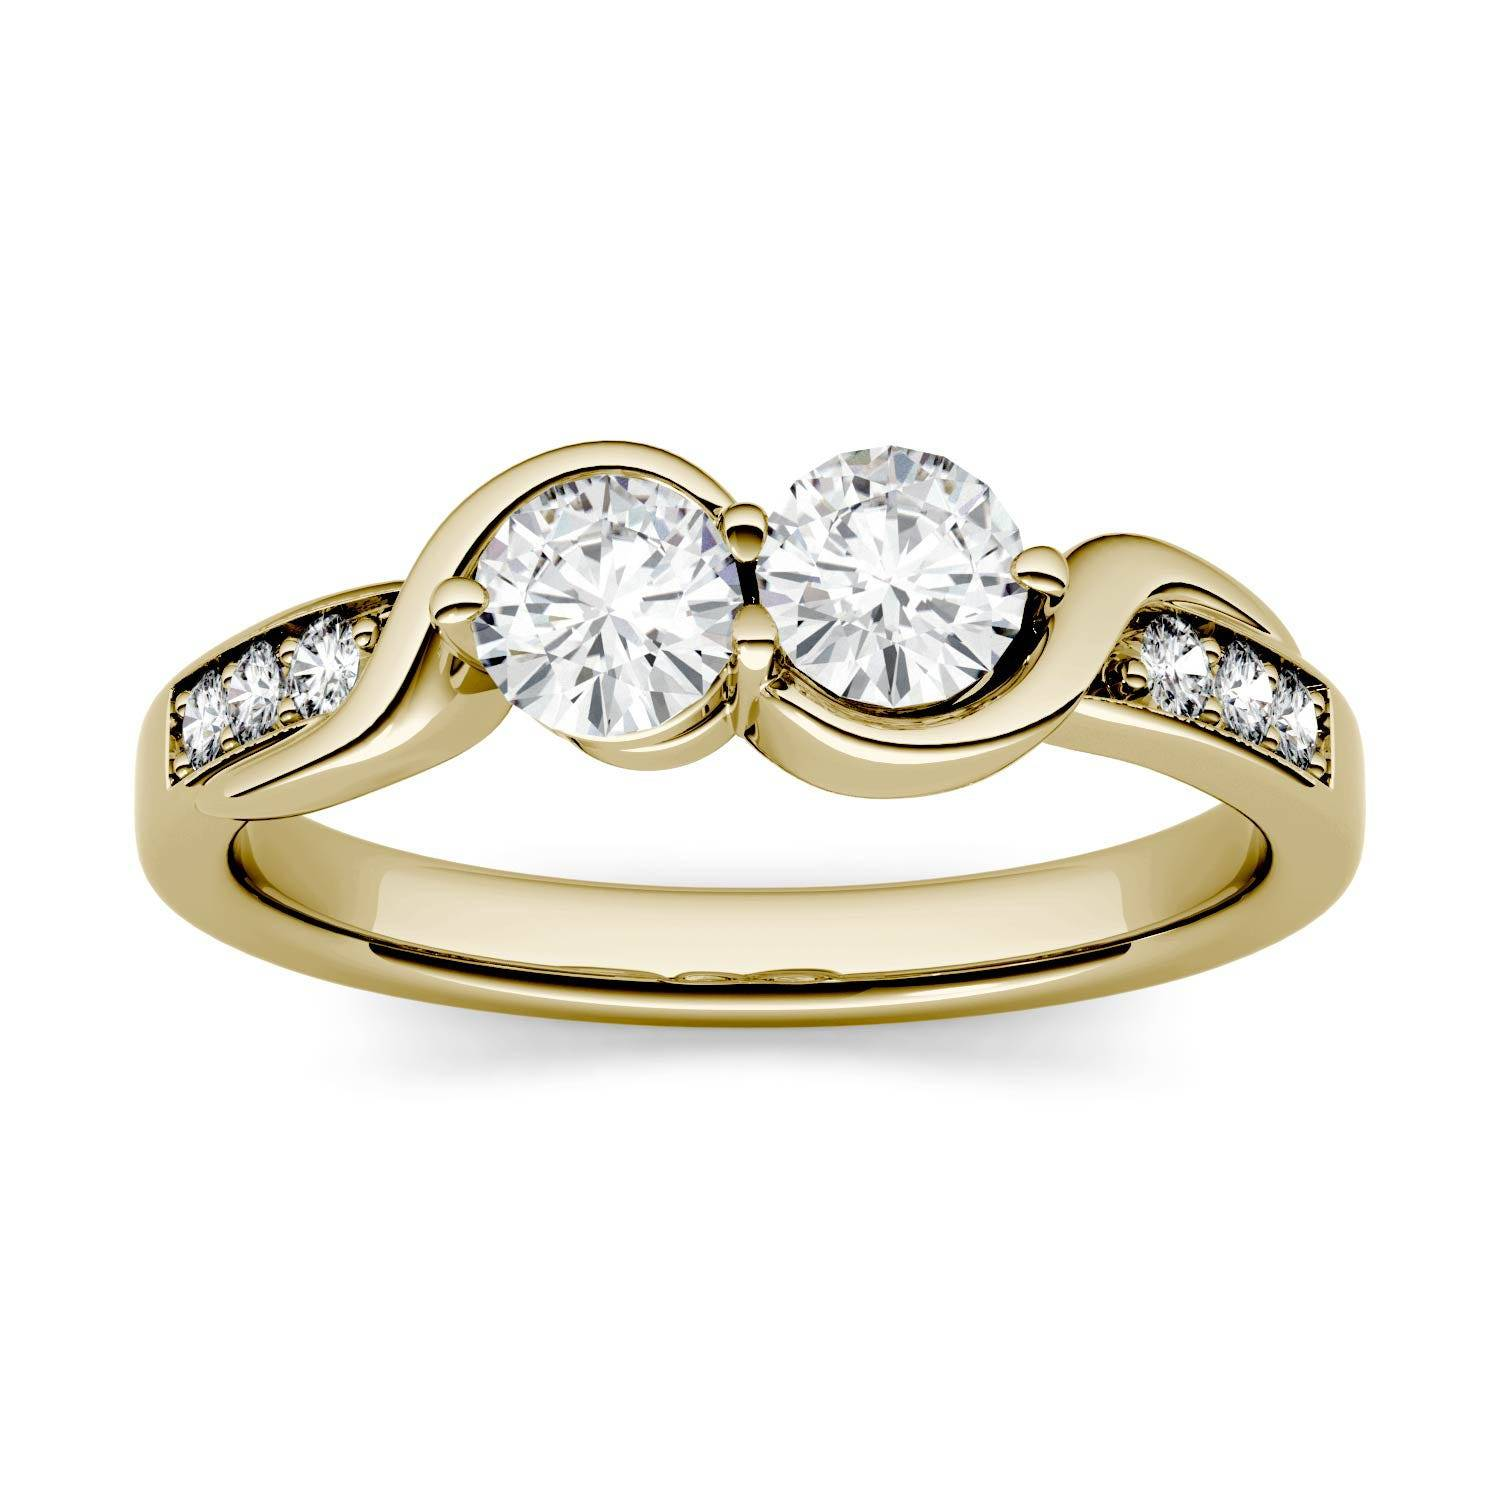 Charles & Colvard Two Stone Swirl with Side Accents Wedding Ring in 14K Yellow Gold, Size: 6, 1.12CTW Round Forever One - Colorless Moissanite Charles & Colvard  - Yellow Gold - Size: 6